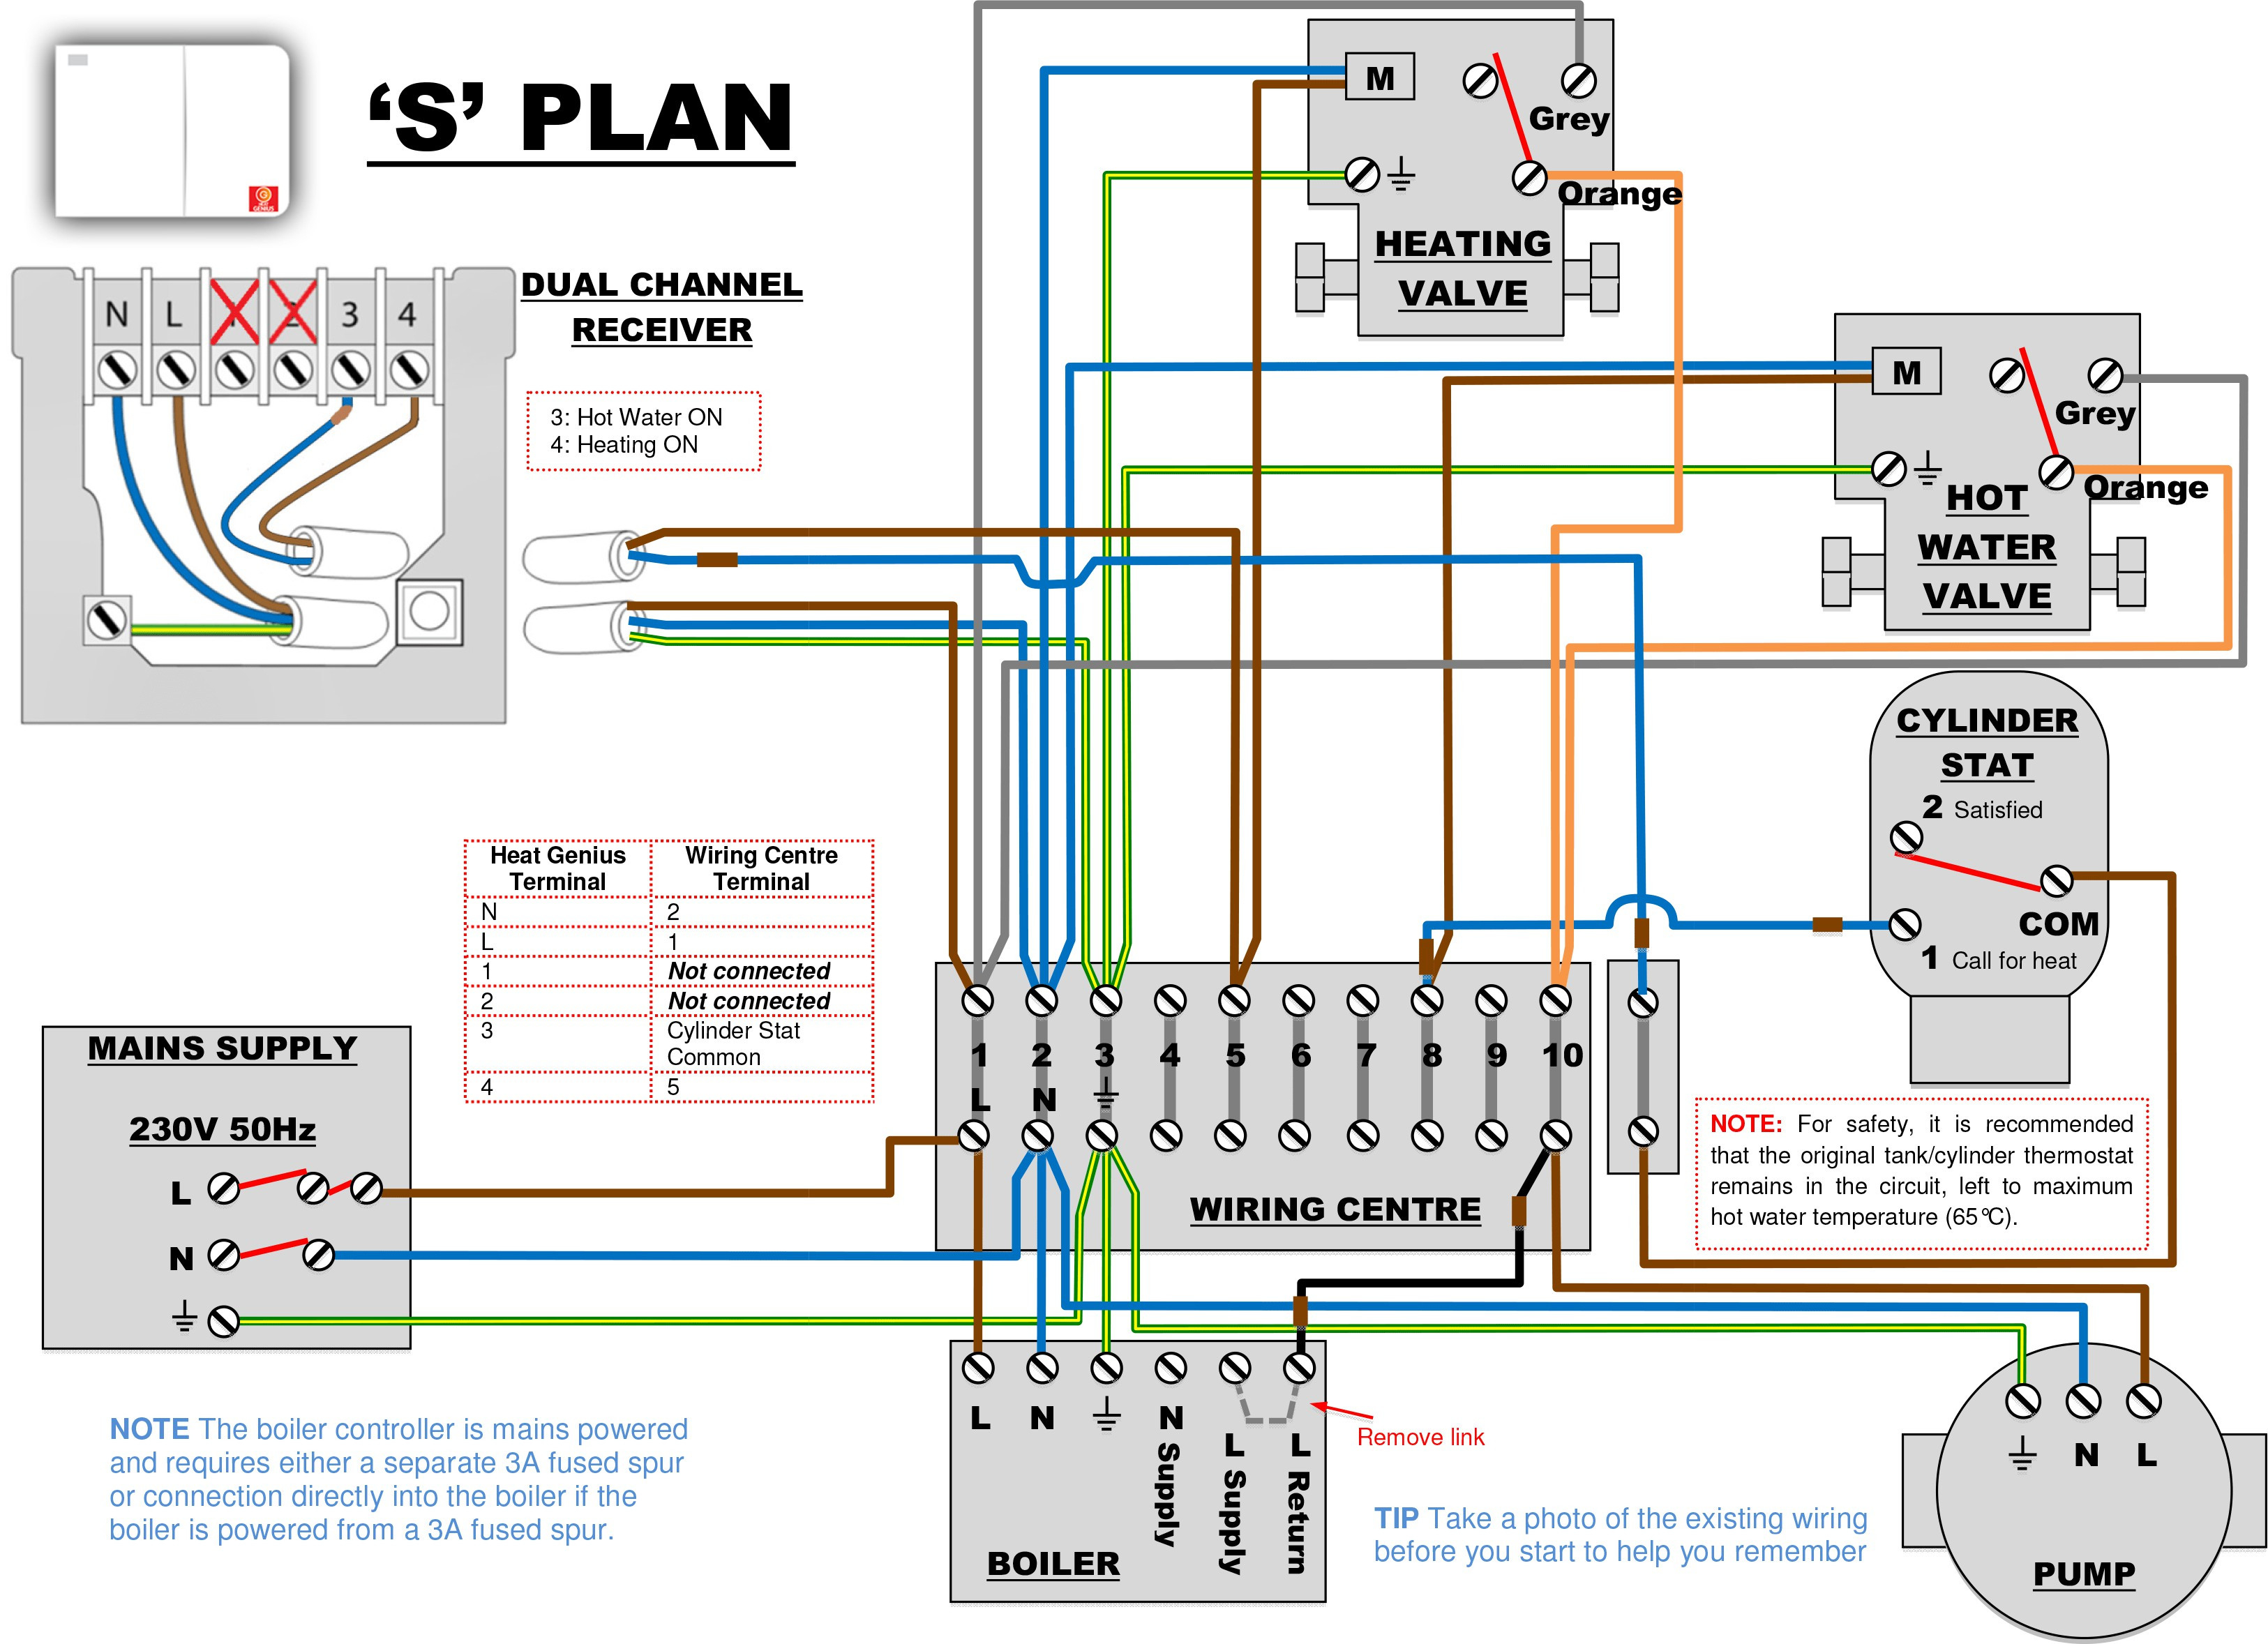 Nest Thermostat Wiring Issues - Wiring Diagram Meta on nesting diagram, nest control diagram, nest thermostat, nest installation,